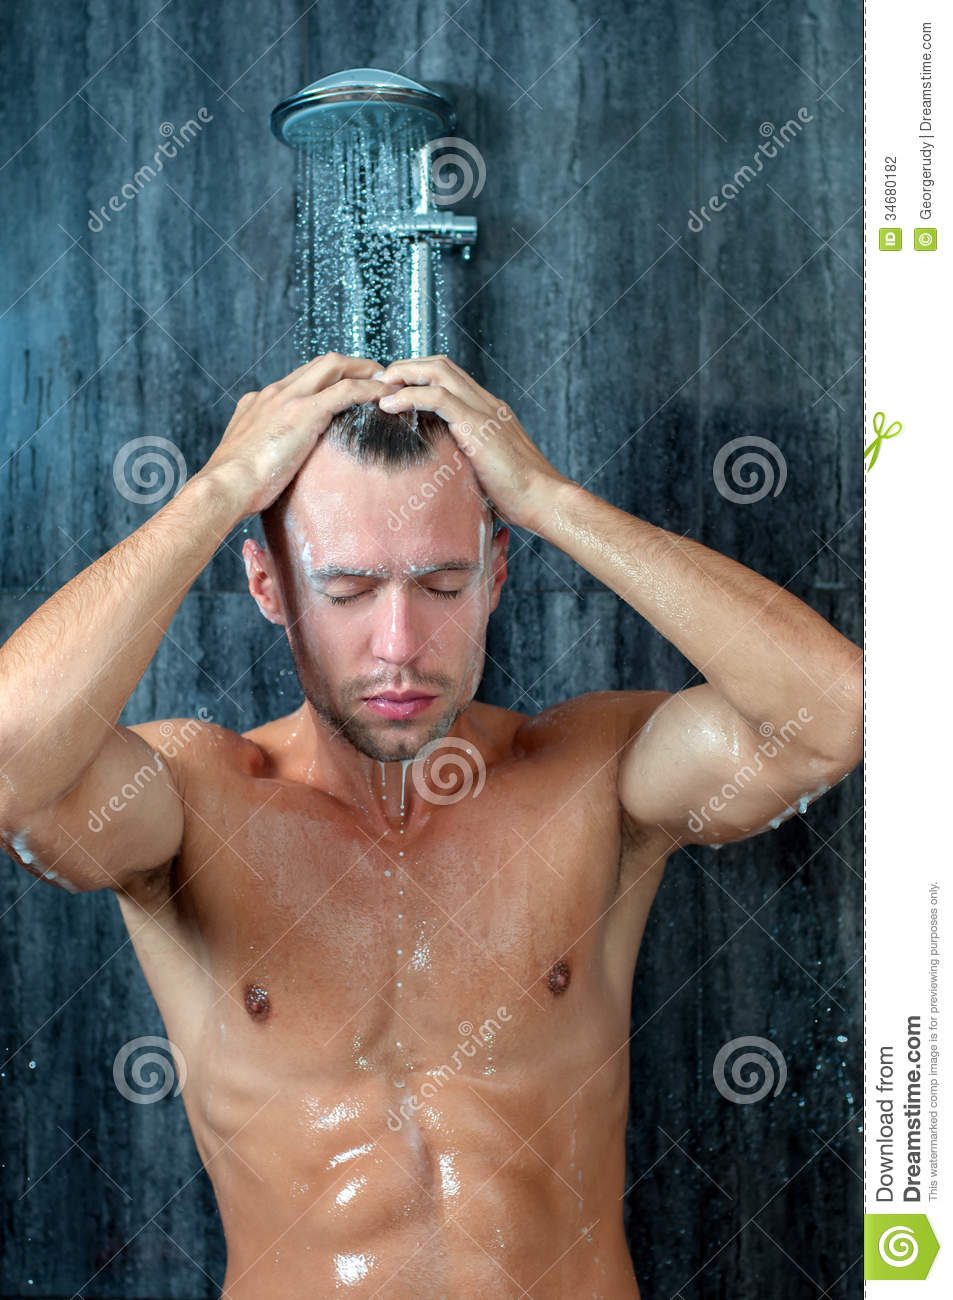 Shower Stock Photography  Image 34680182